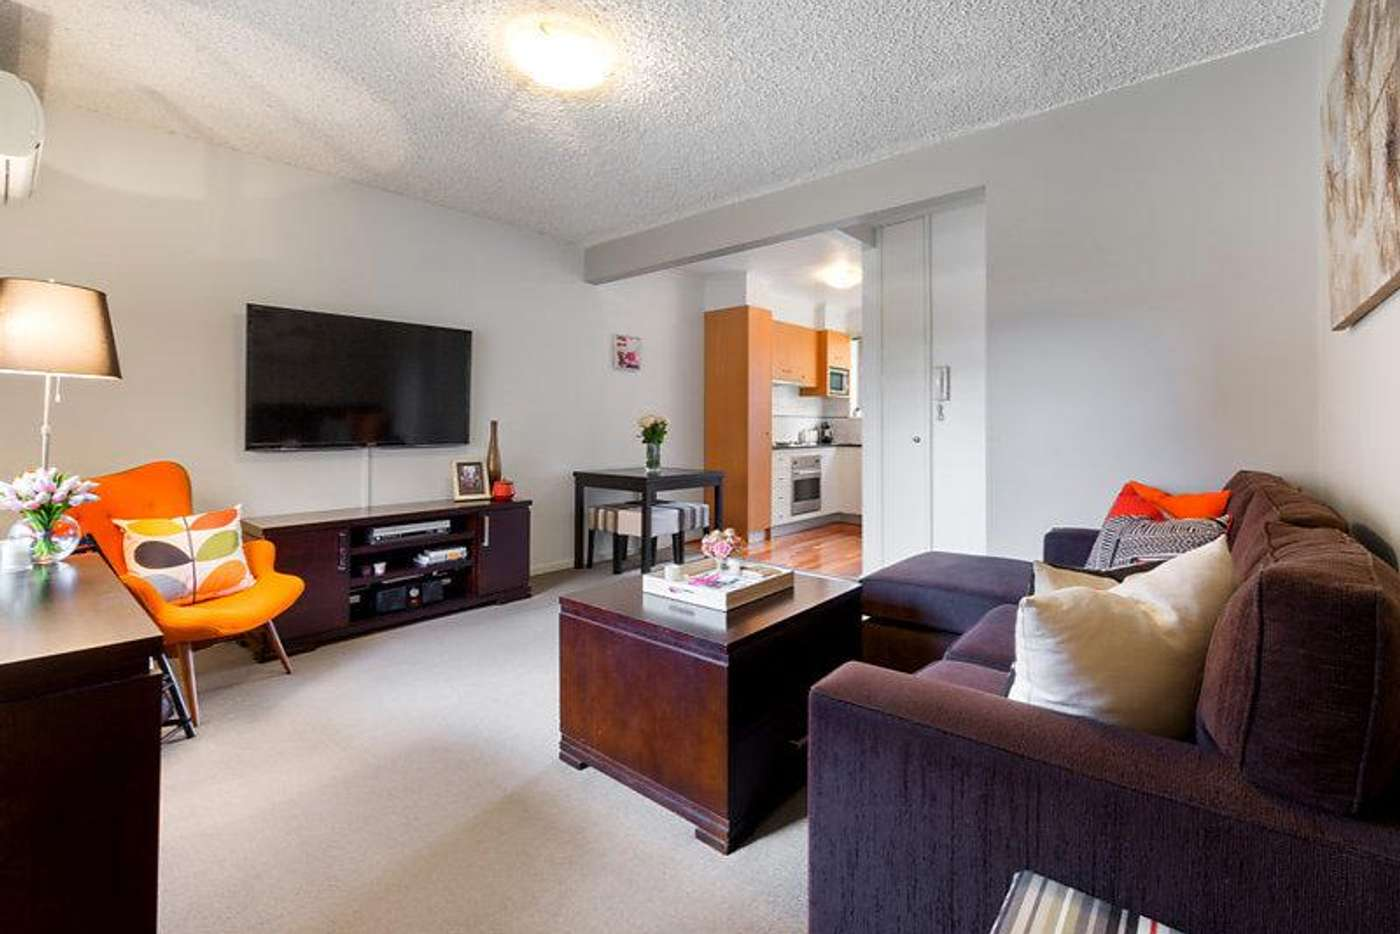 Sixth view of Homely apartment listing, 5/15 Cassels Road, Brunswick VIC 3056